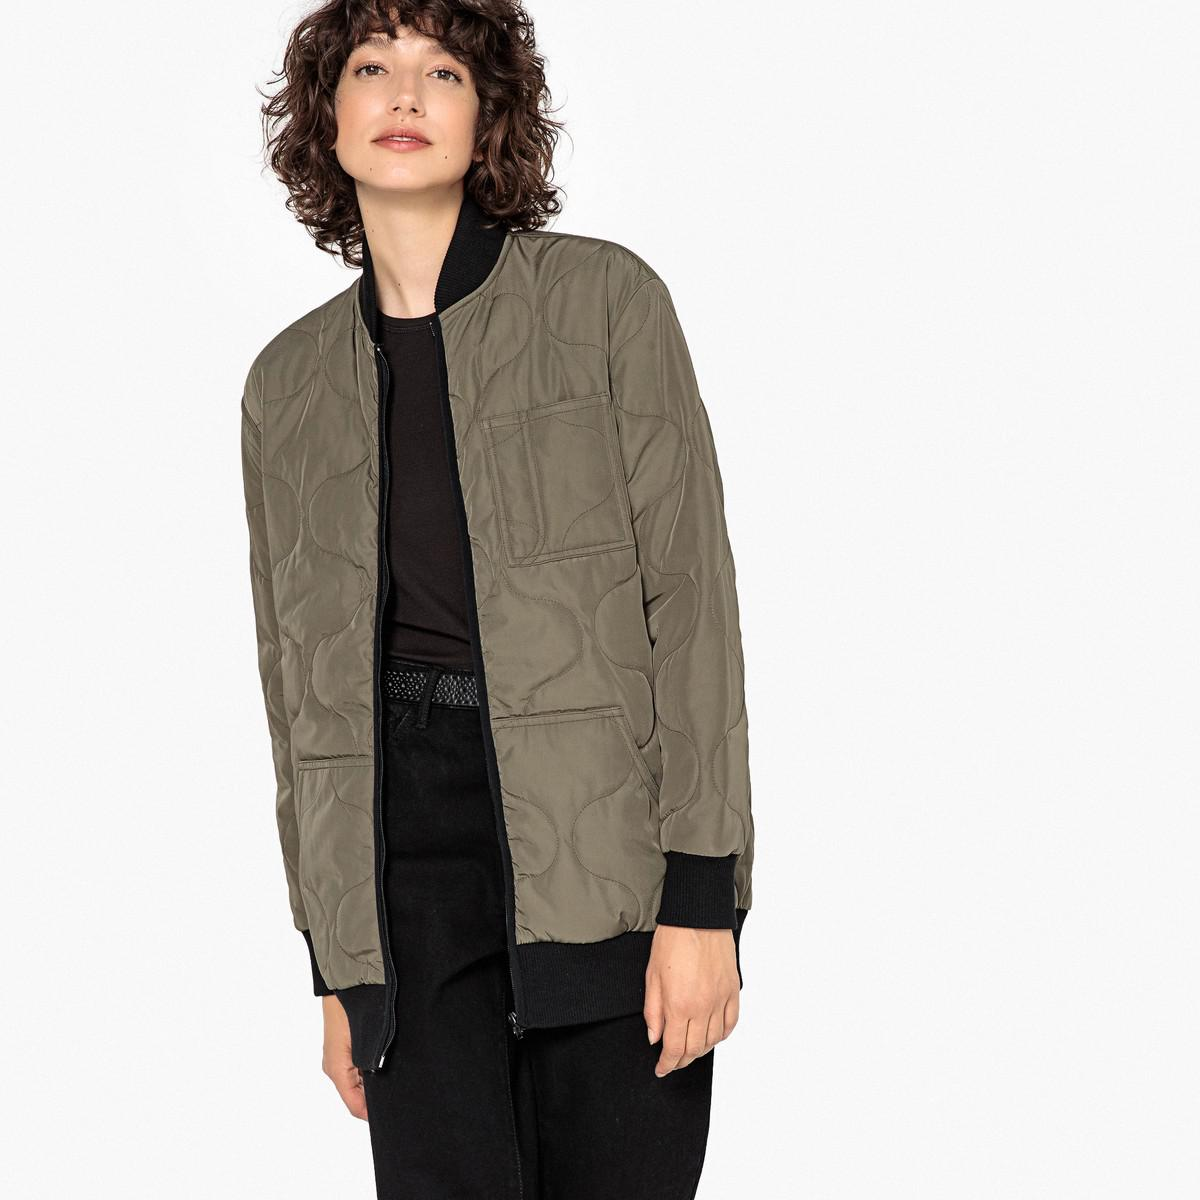 fc233d798f5c La Redoute. Women s Zip-up Quilted Jacket